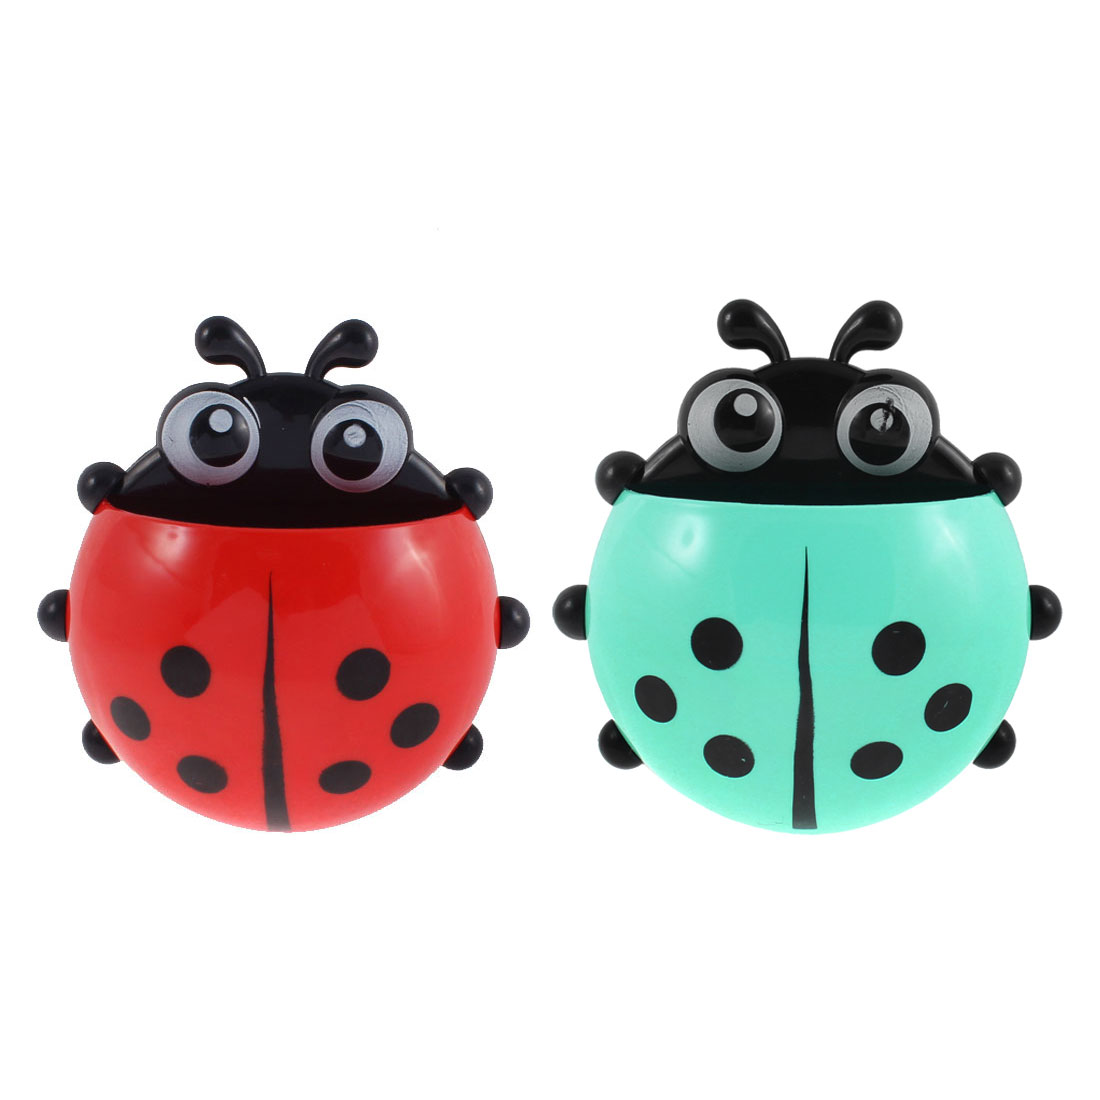 Plastic Ladybird Shape Suction Cup Toothbrush Holder Cyan Red 2 Pcs